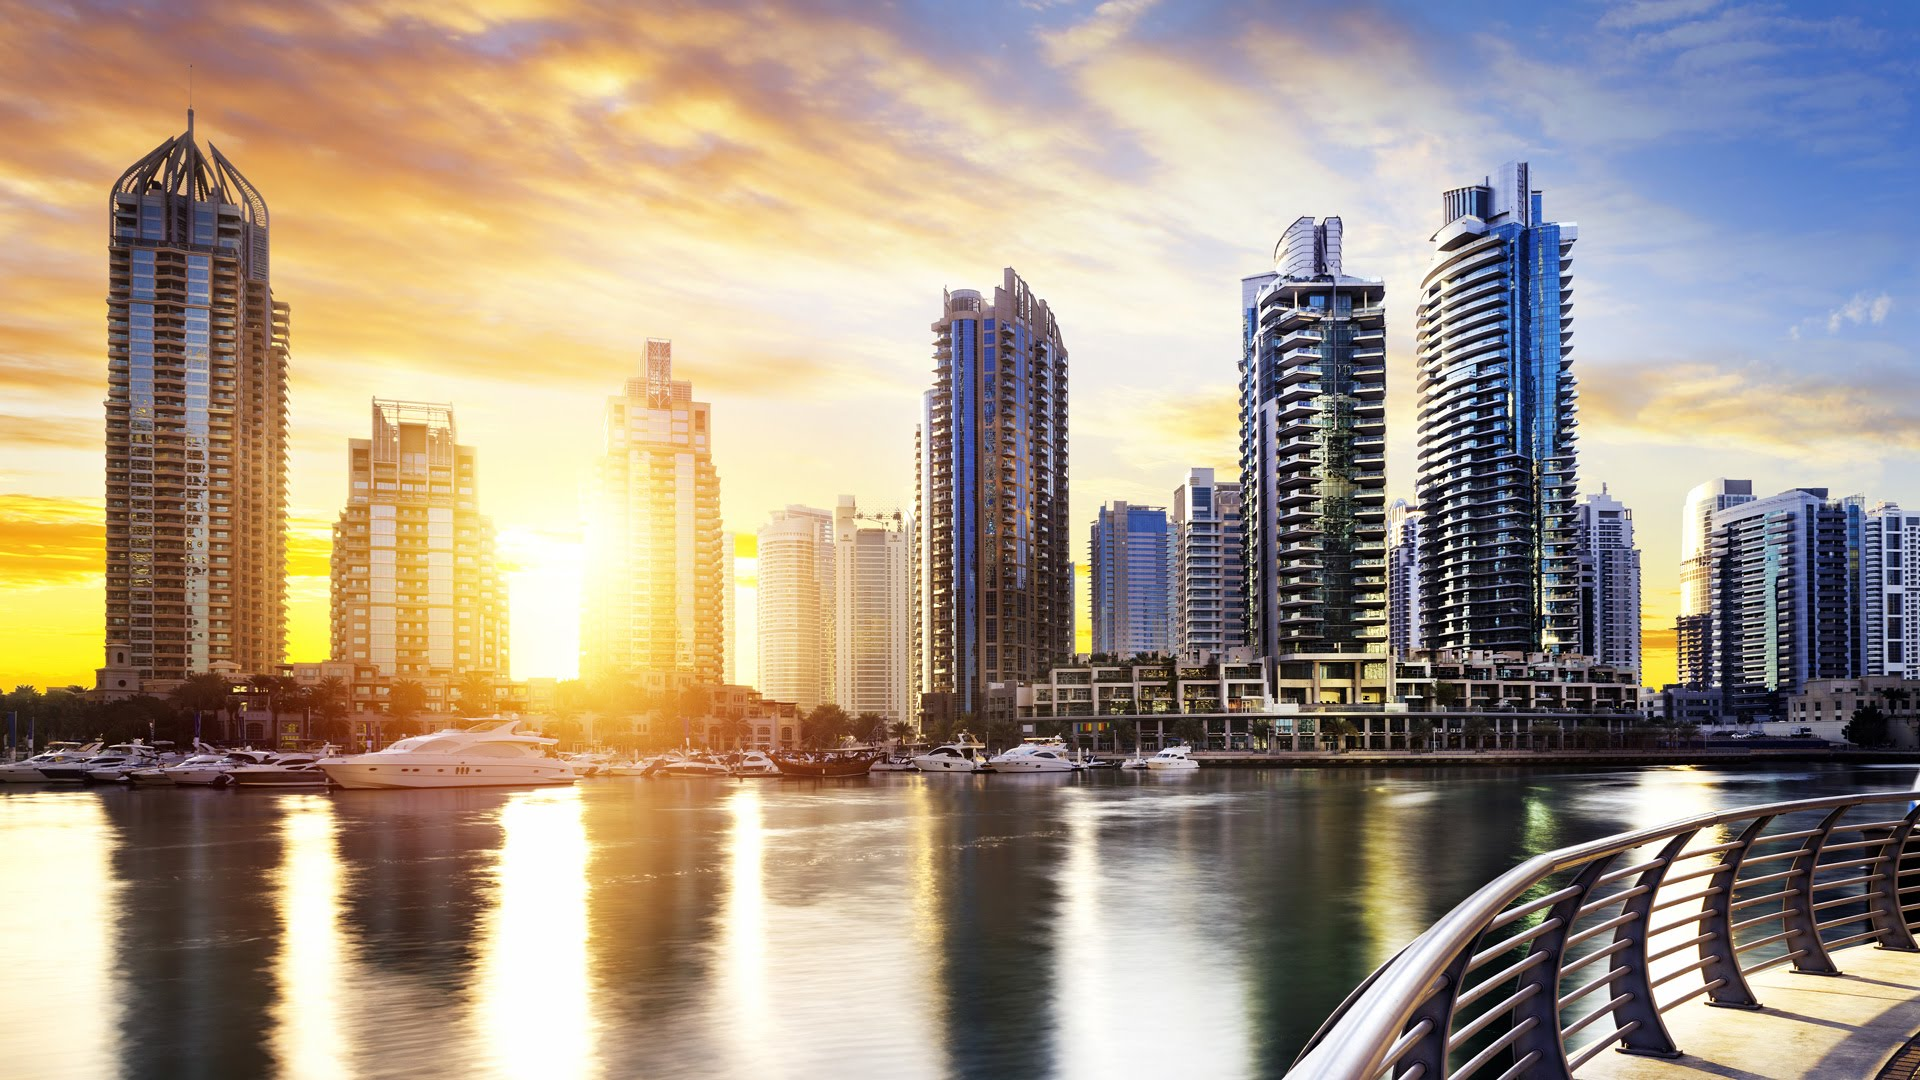 Qatari citizens are rushing to sell their properties in Dubai amidst ongoing Gulf crisis.